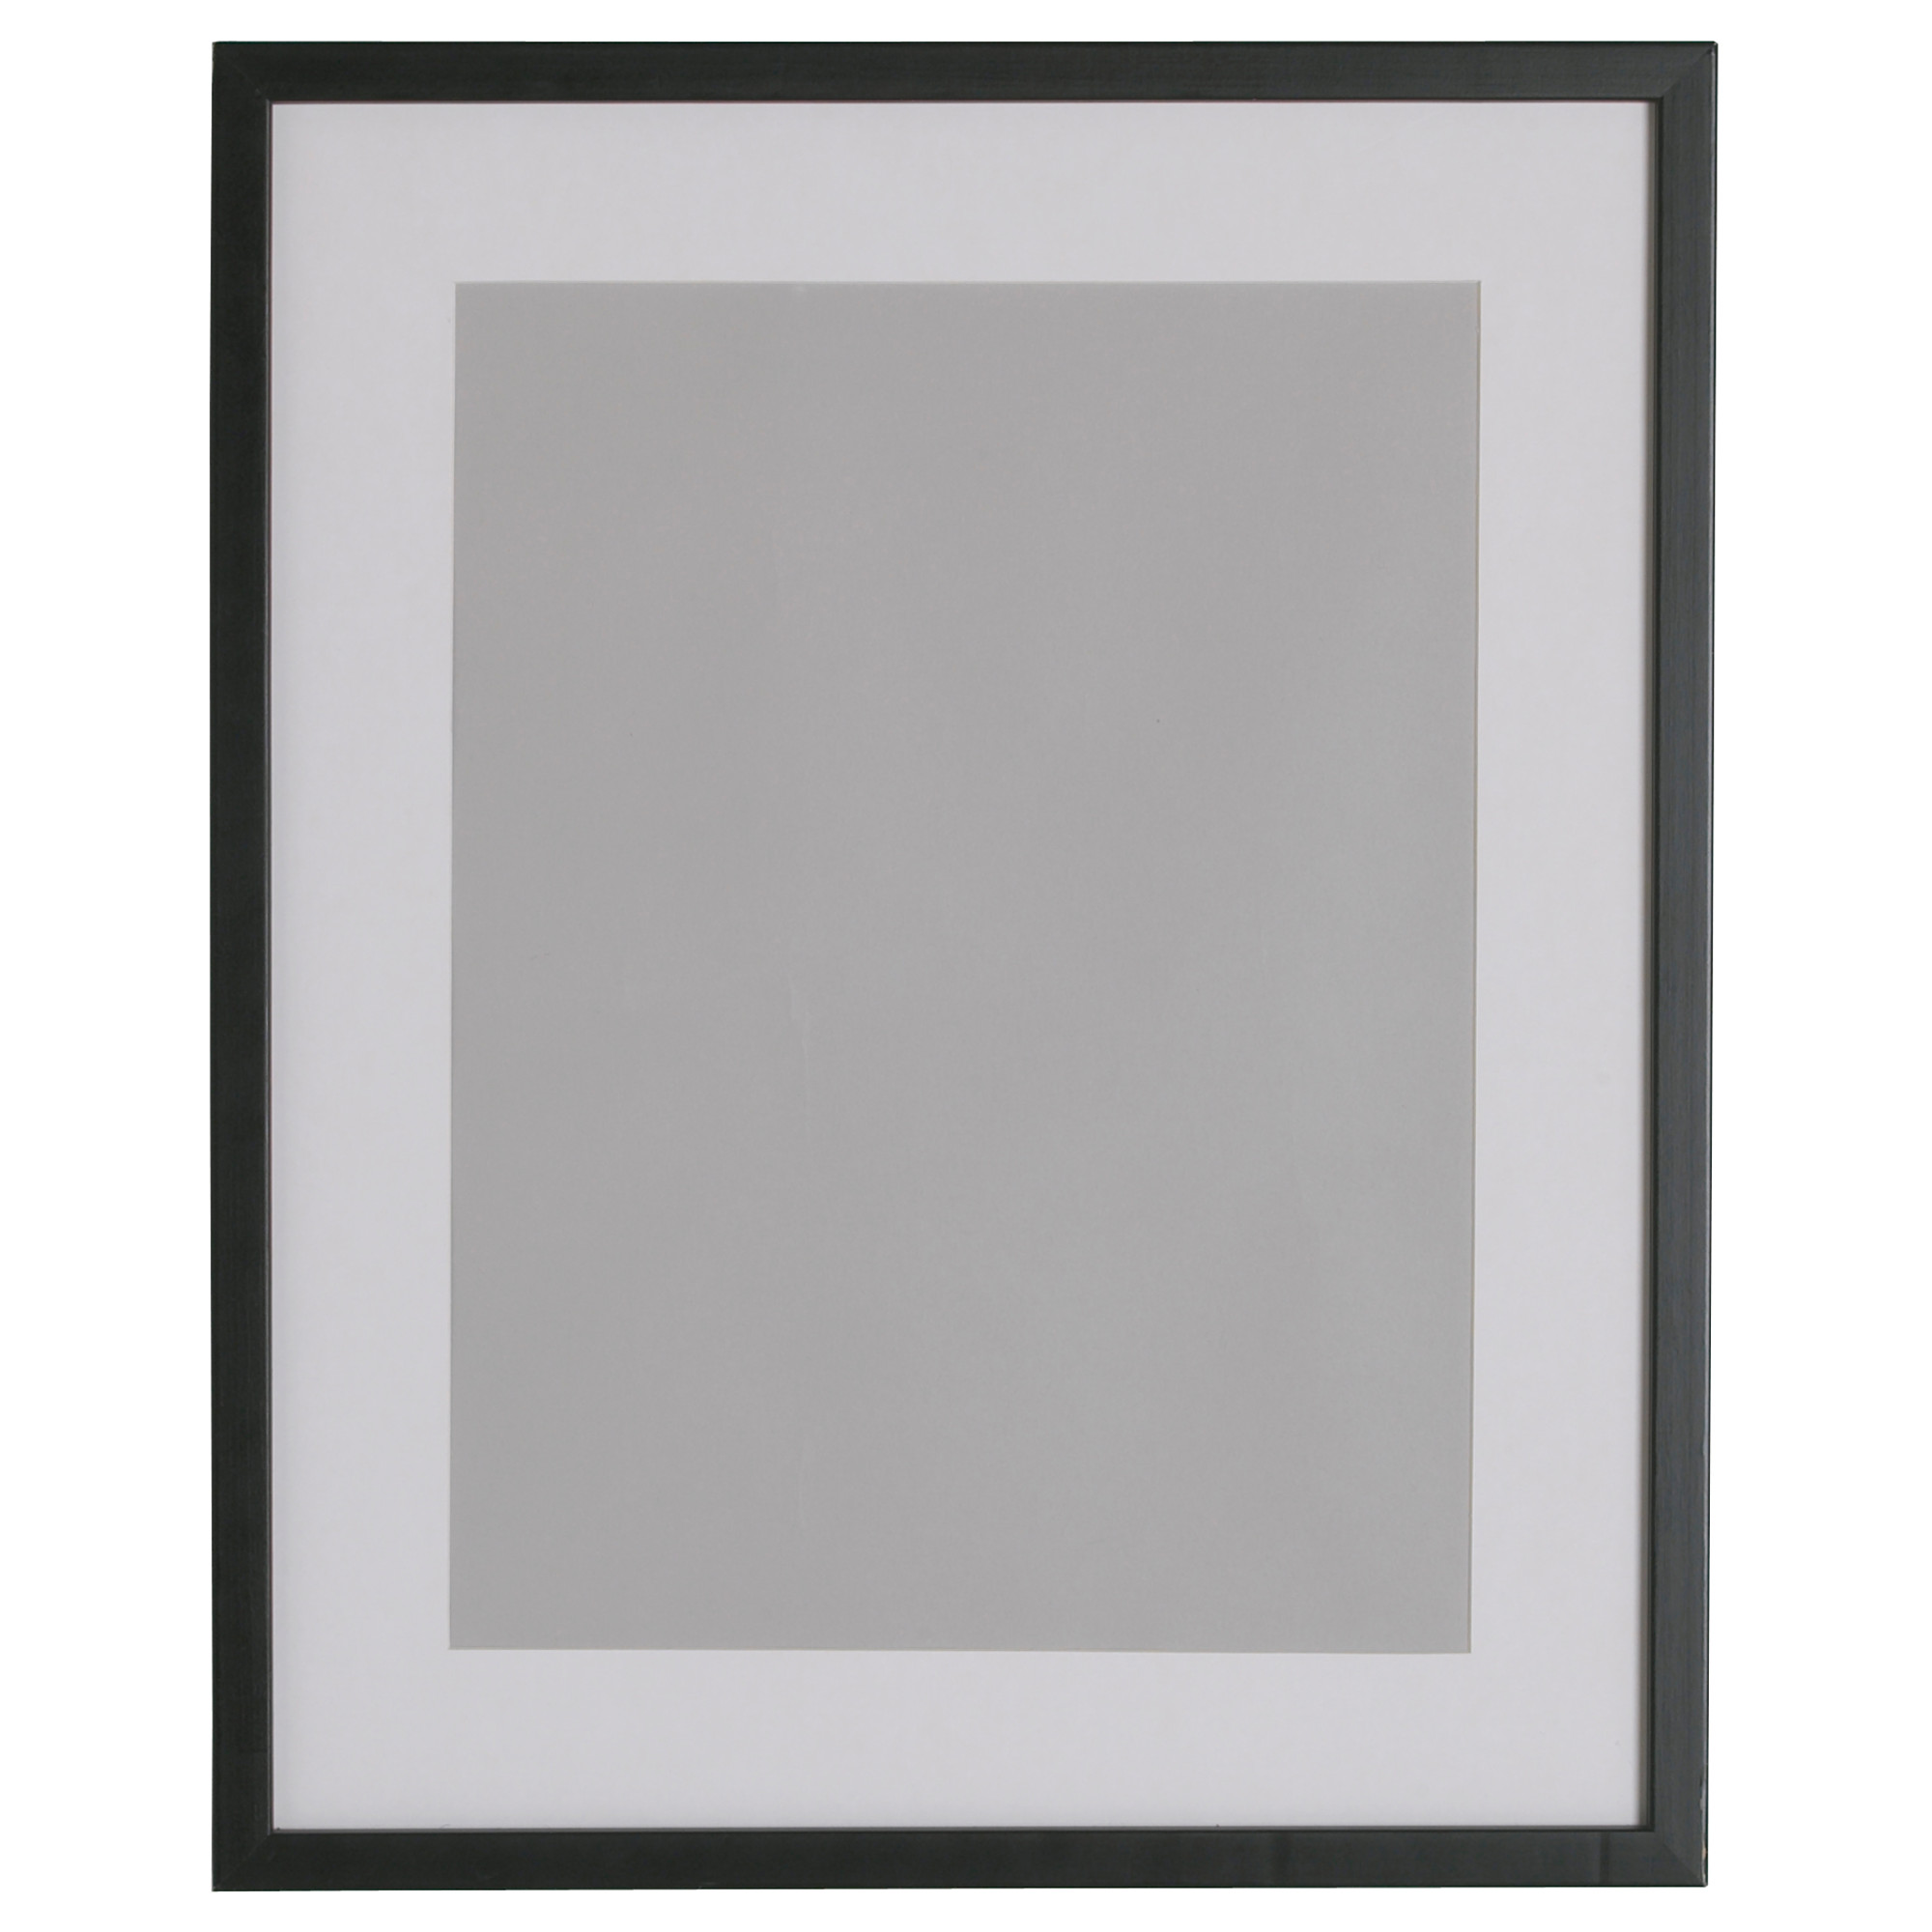 Free Frame Black And White, Download Free Clip Art, Free Clip Art on.